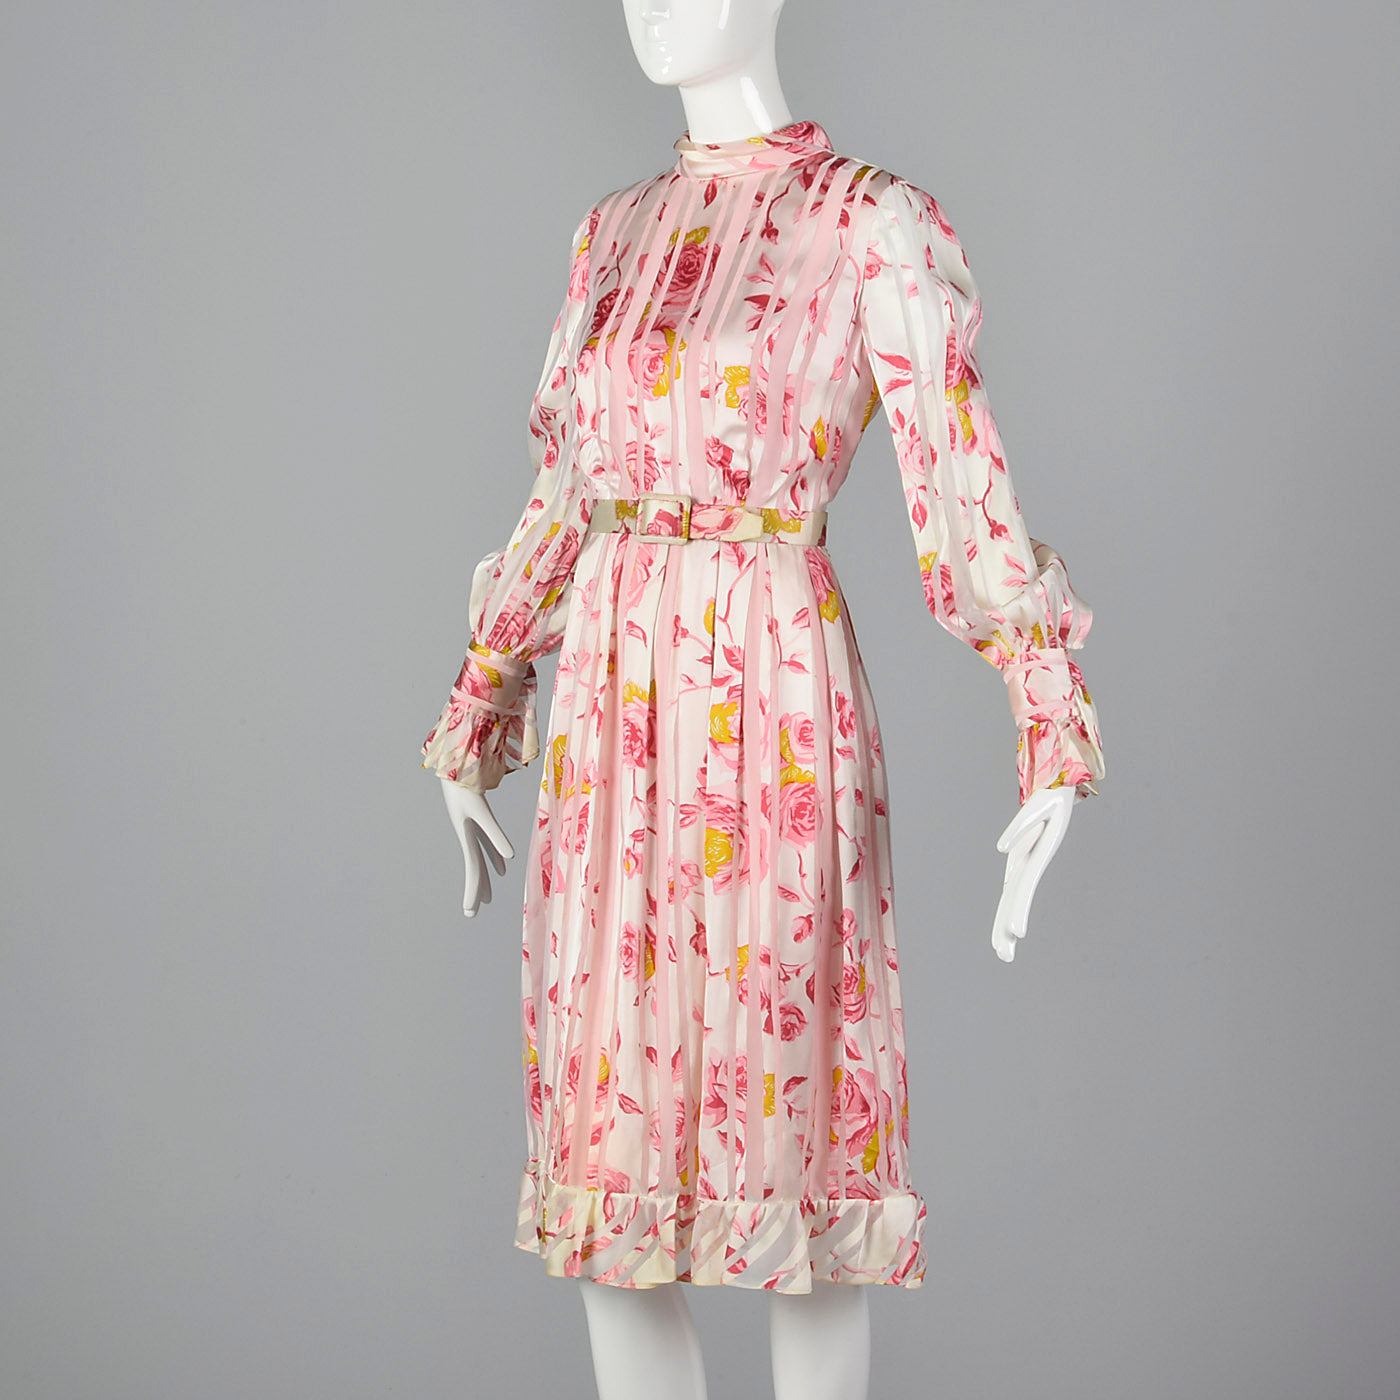 Medium 1970s Christian Dior Pink Floral Stripe Dress Long Sleeve